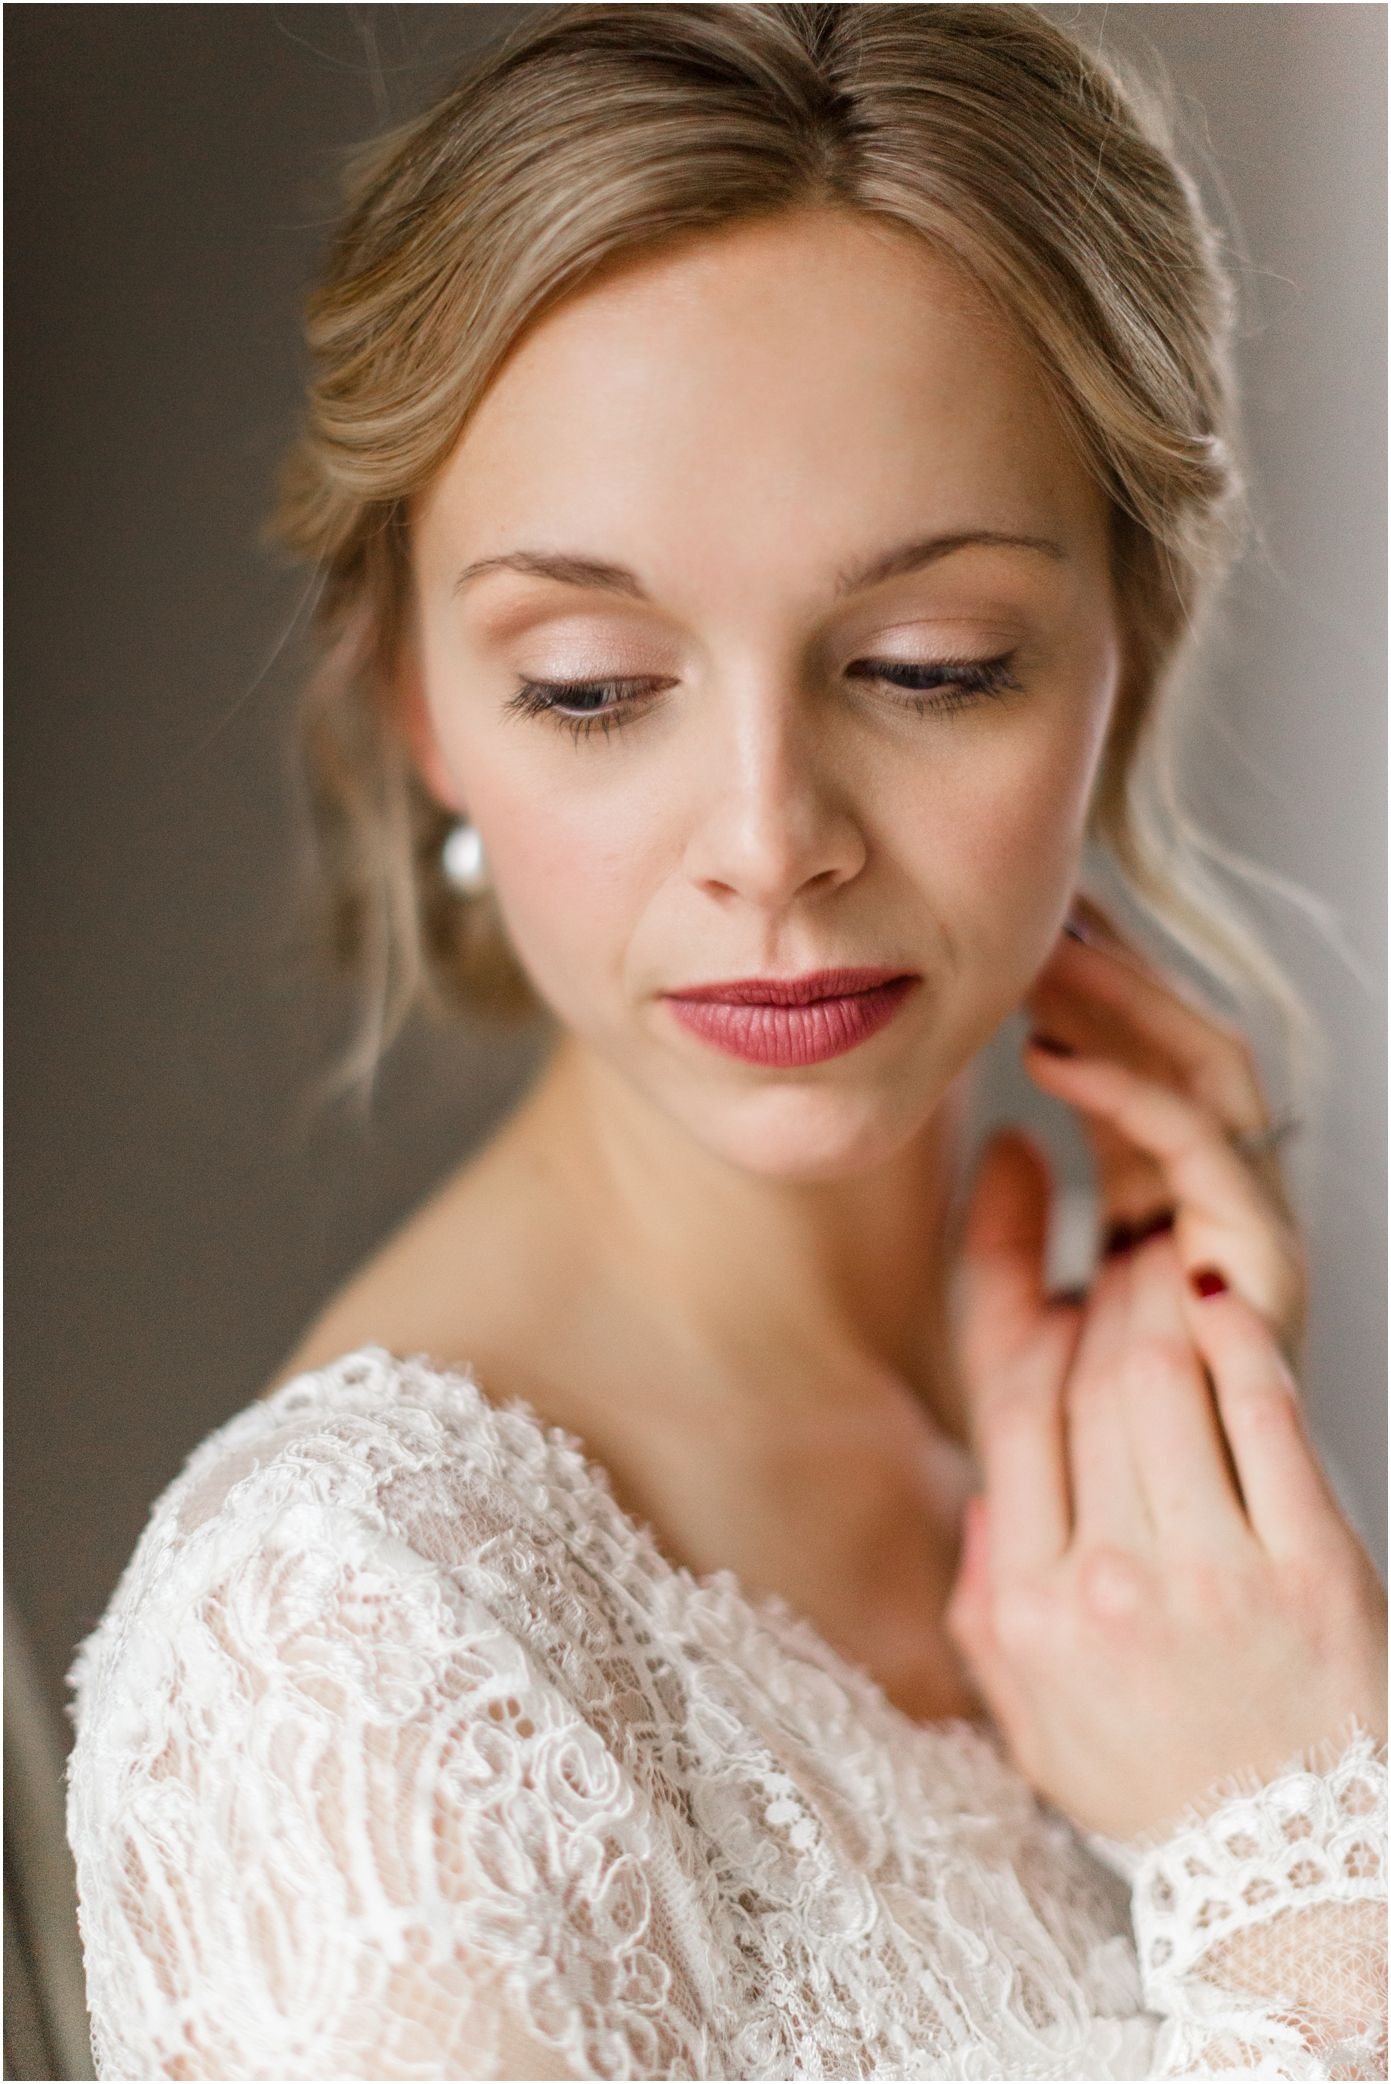 natural and beautiful wedding hair & makeup for blondes | wedding